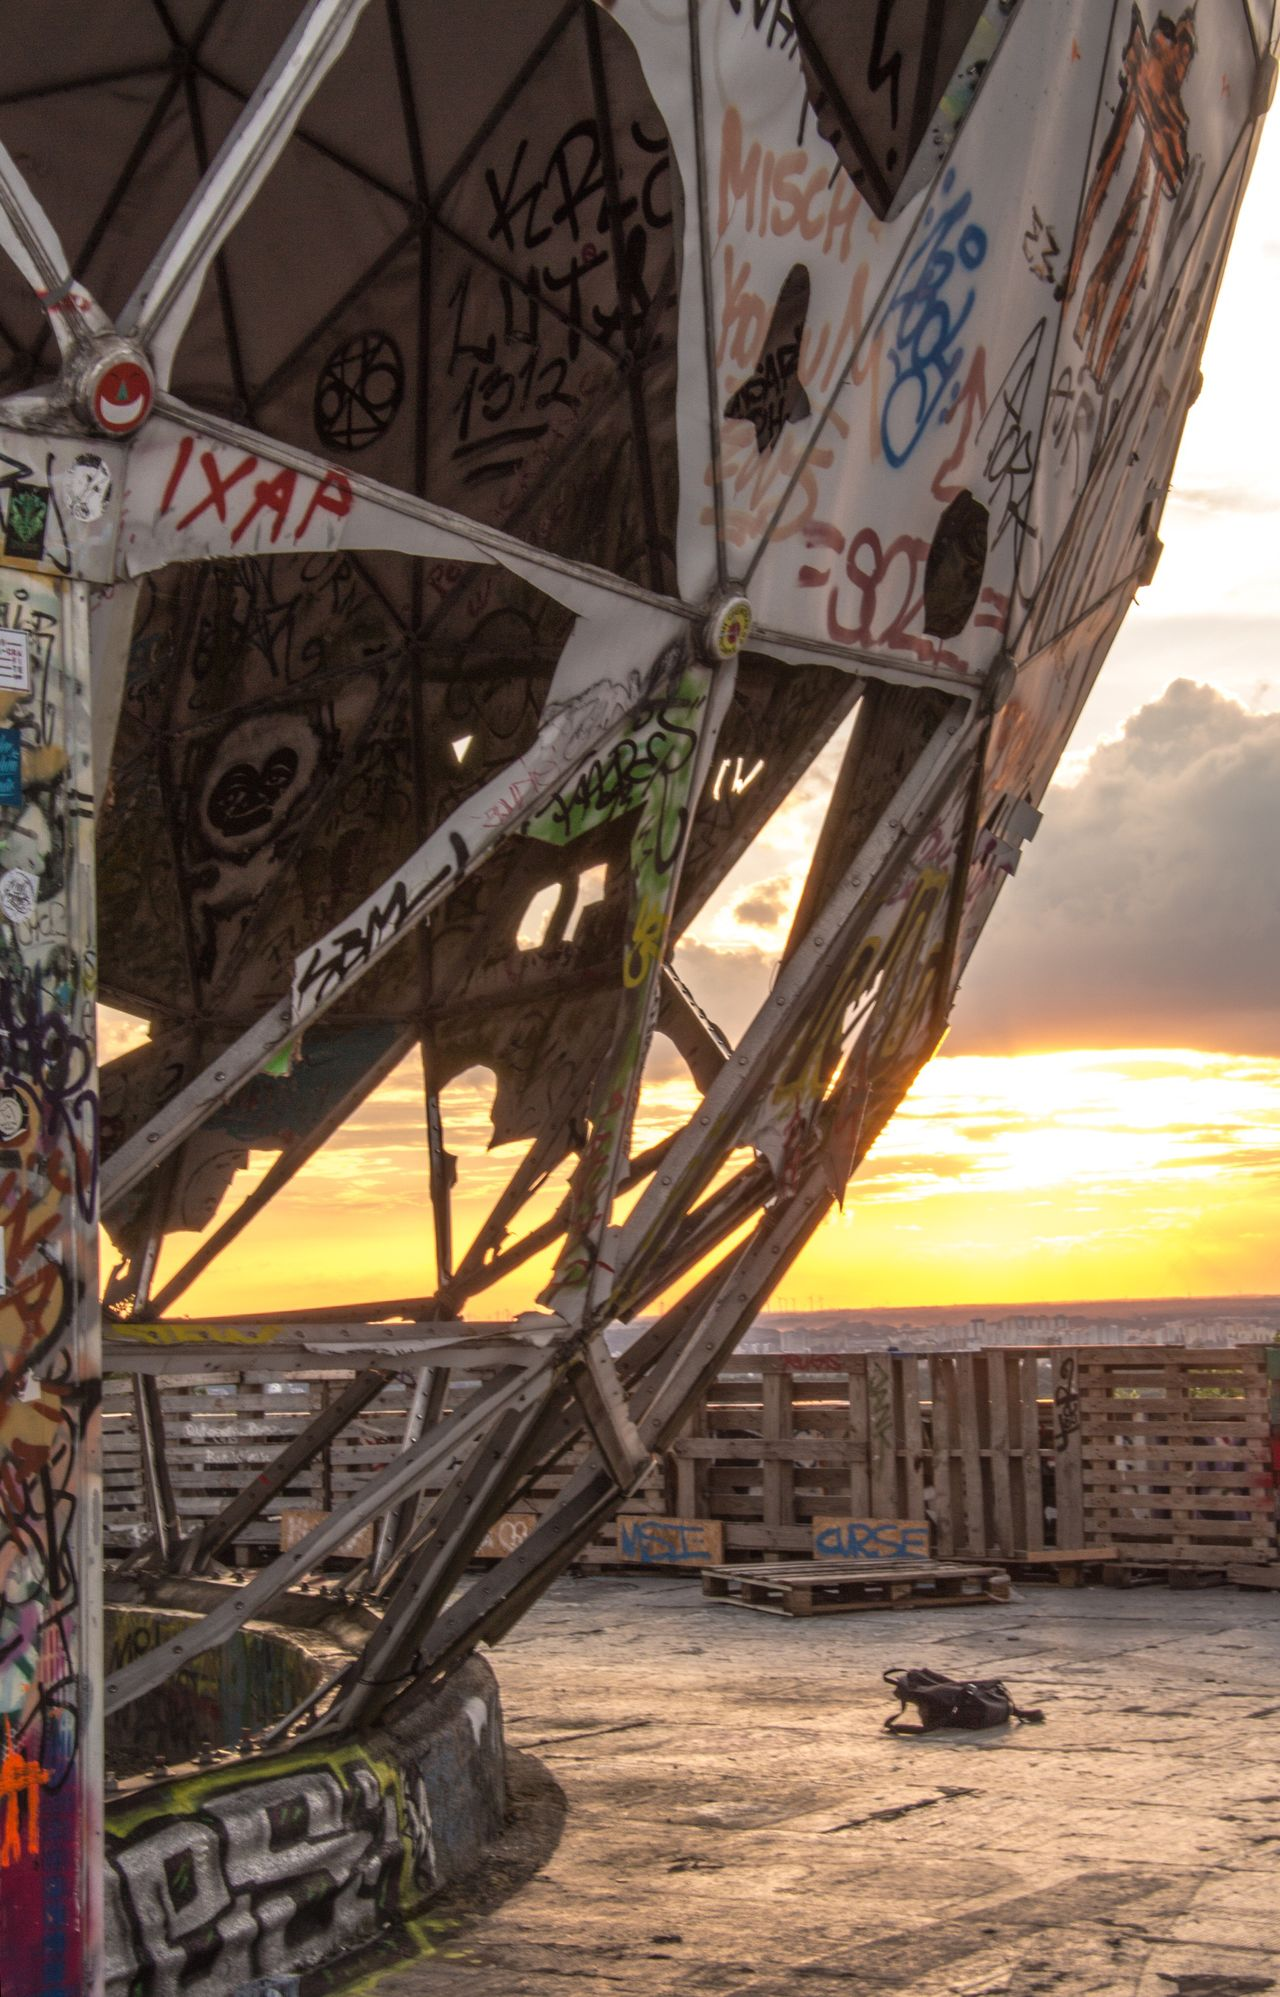 Ruin Evening Sky Evening Abhörstation Abhörstation Teufelsberg Rotten Graffiti Ruined Building Sunset Sky NSA Station Berlin Old Ruin EyeEm Best Edits Taking Photos Teufelsbergberlin Berlin Teufelsberg Structure EyeEm Best Shots Berliner Ansichten Metall Capture Berlin